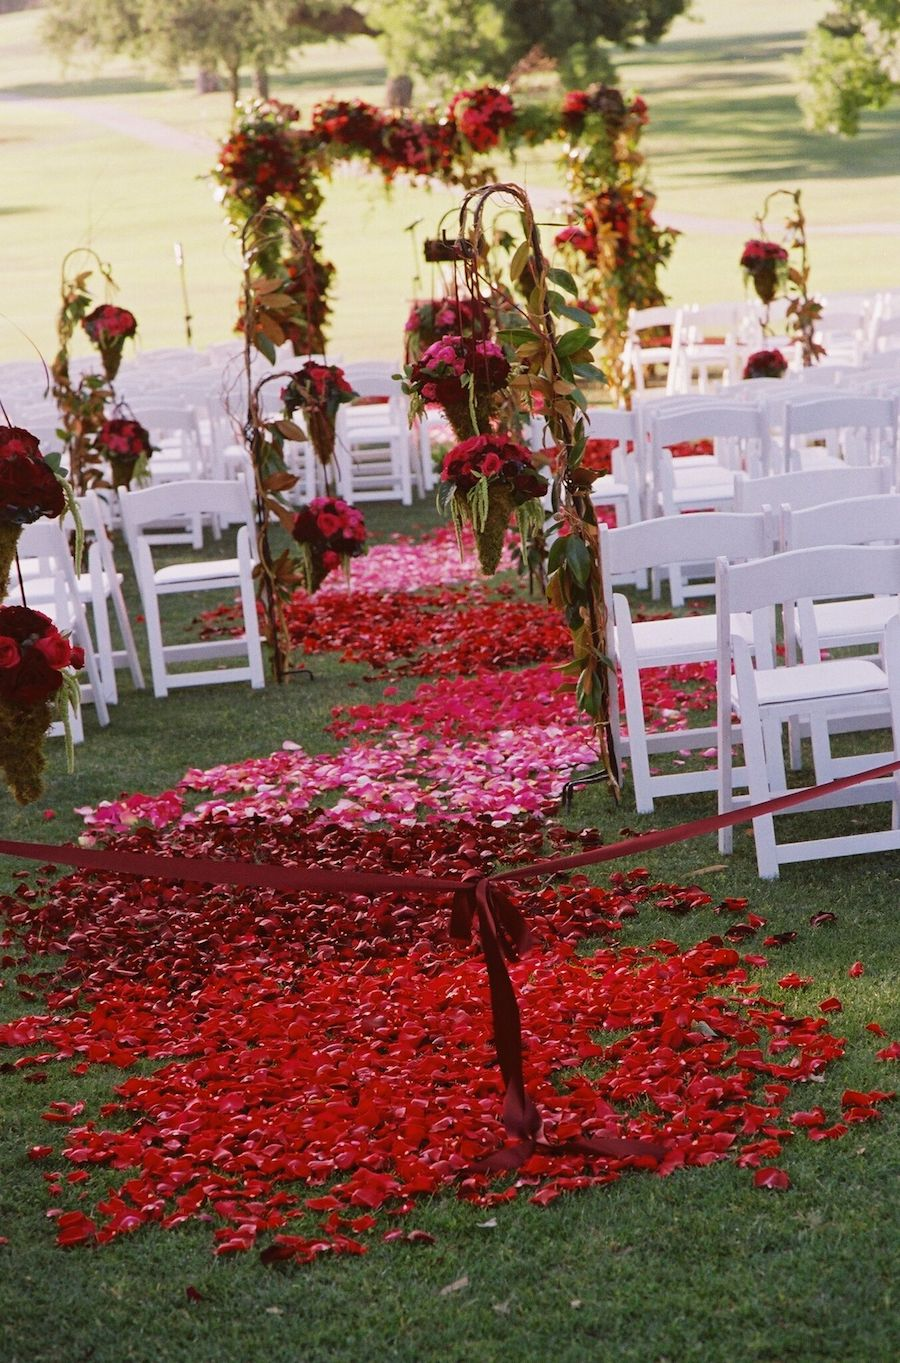 levine fox, levine fox events, alyson heather fox, alyson fox, wedding planner, destination wedding, bright rentals, john solano photography, ojai valley inn, destination wedding, ombre aisle, burgundy wedding, ojai wedding, santa barbara wedding,